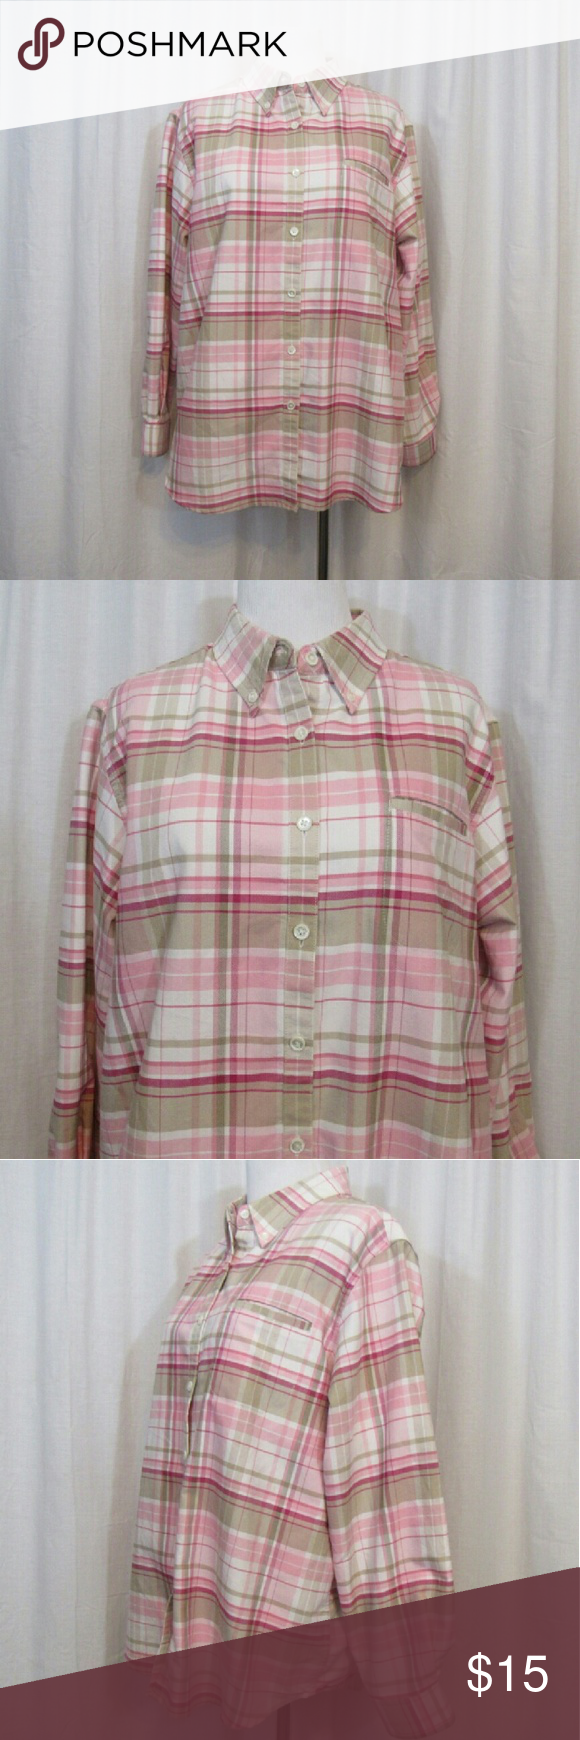 Brand: Cabin Creek Size: Material: Cotton Polyester Care Instructions:  Machine Wash Bust: Sleeves: Shoulders: Length: All Clothes Are In Excellent  Used ...